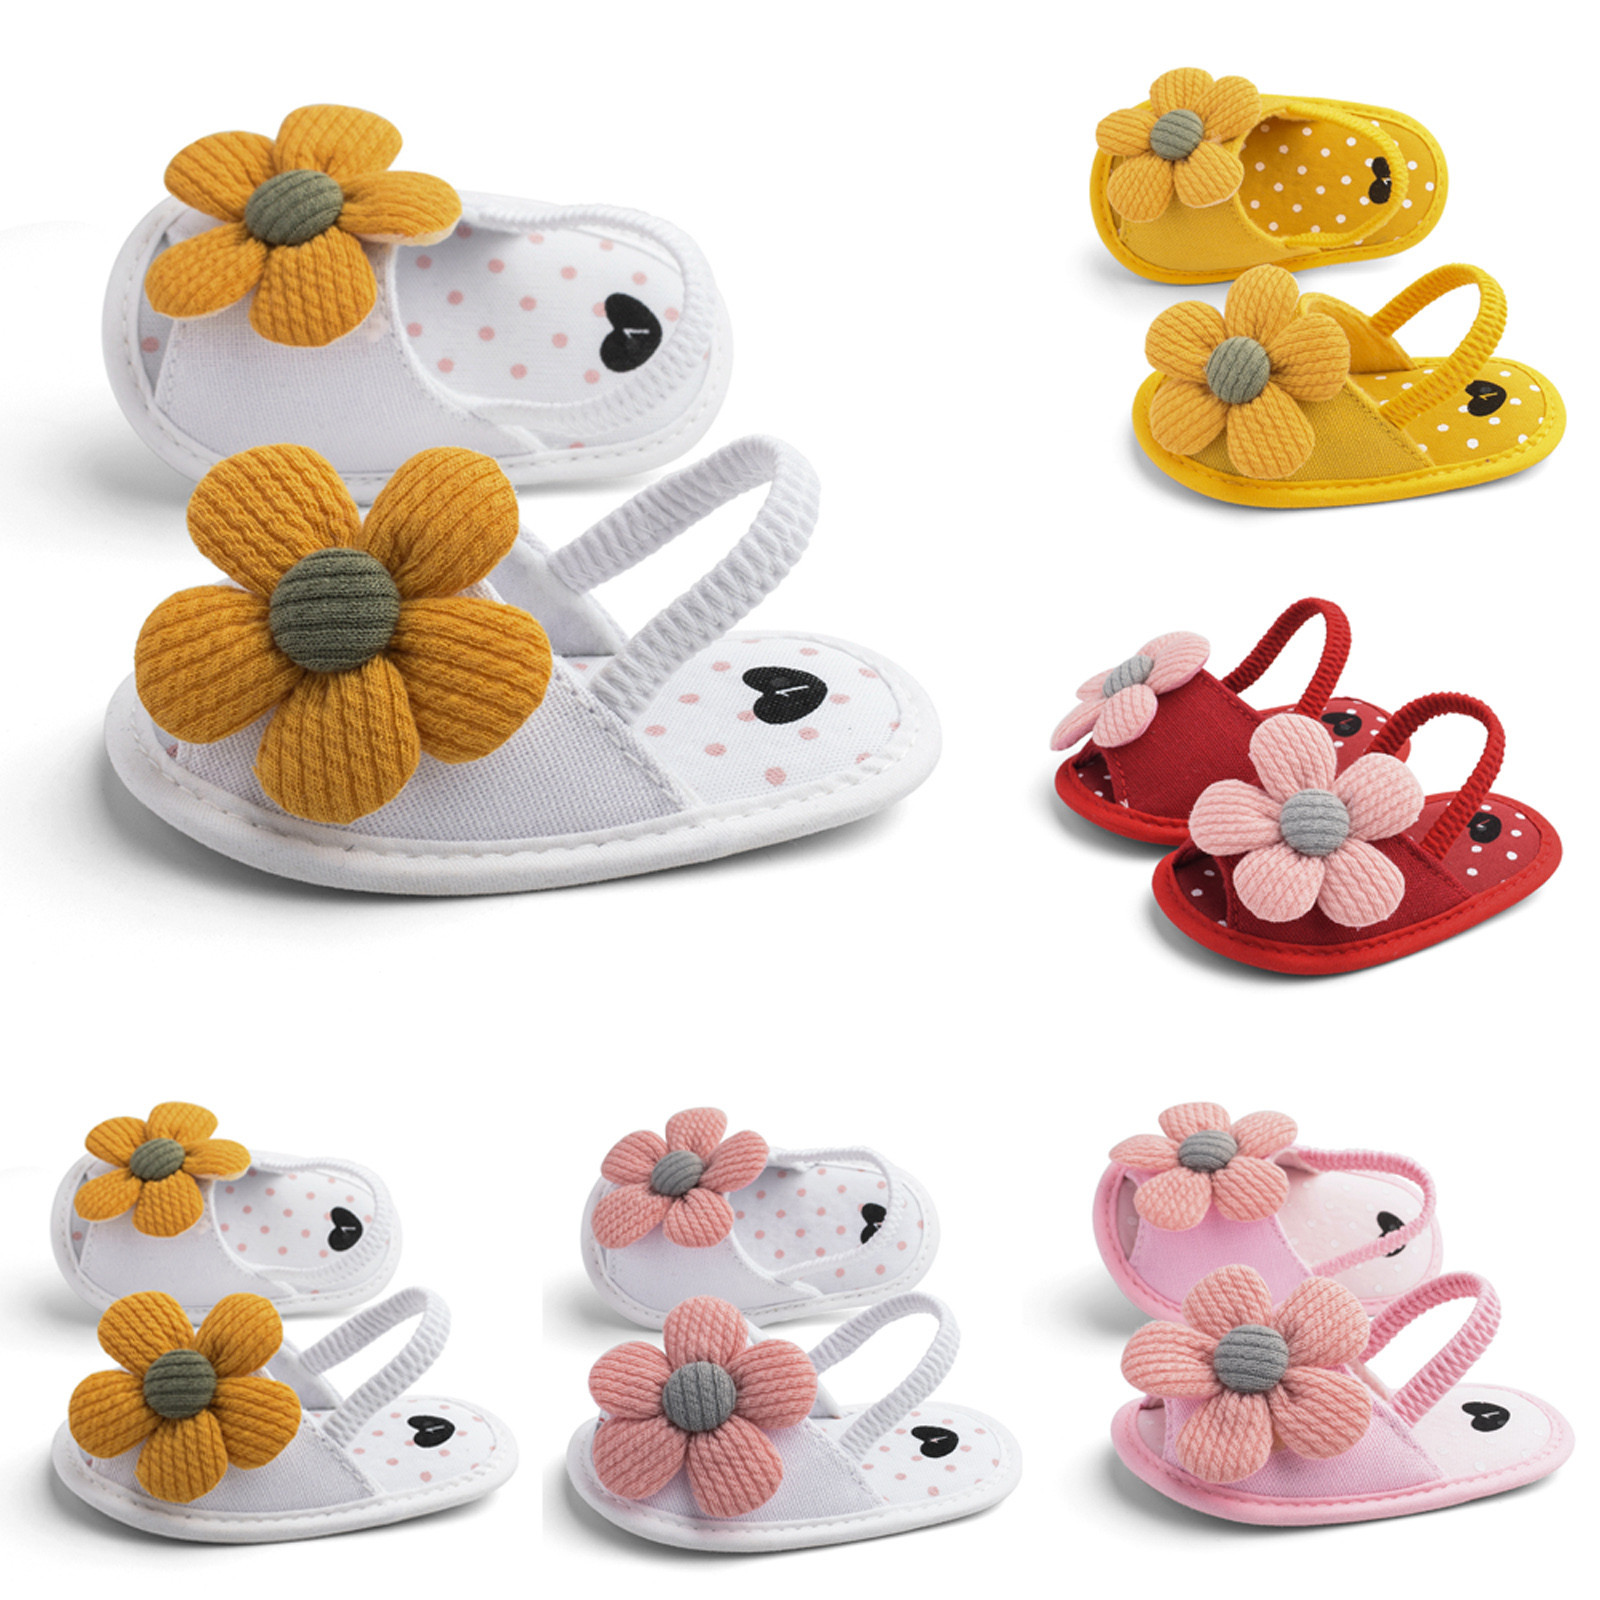 2021 Baby Girls Bow Knot Sandals Children's Leisure Sun Flower Baby Sandals Soft Sole Baby Toddler Shoes First Walkers Shoes